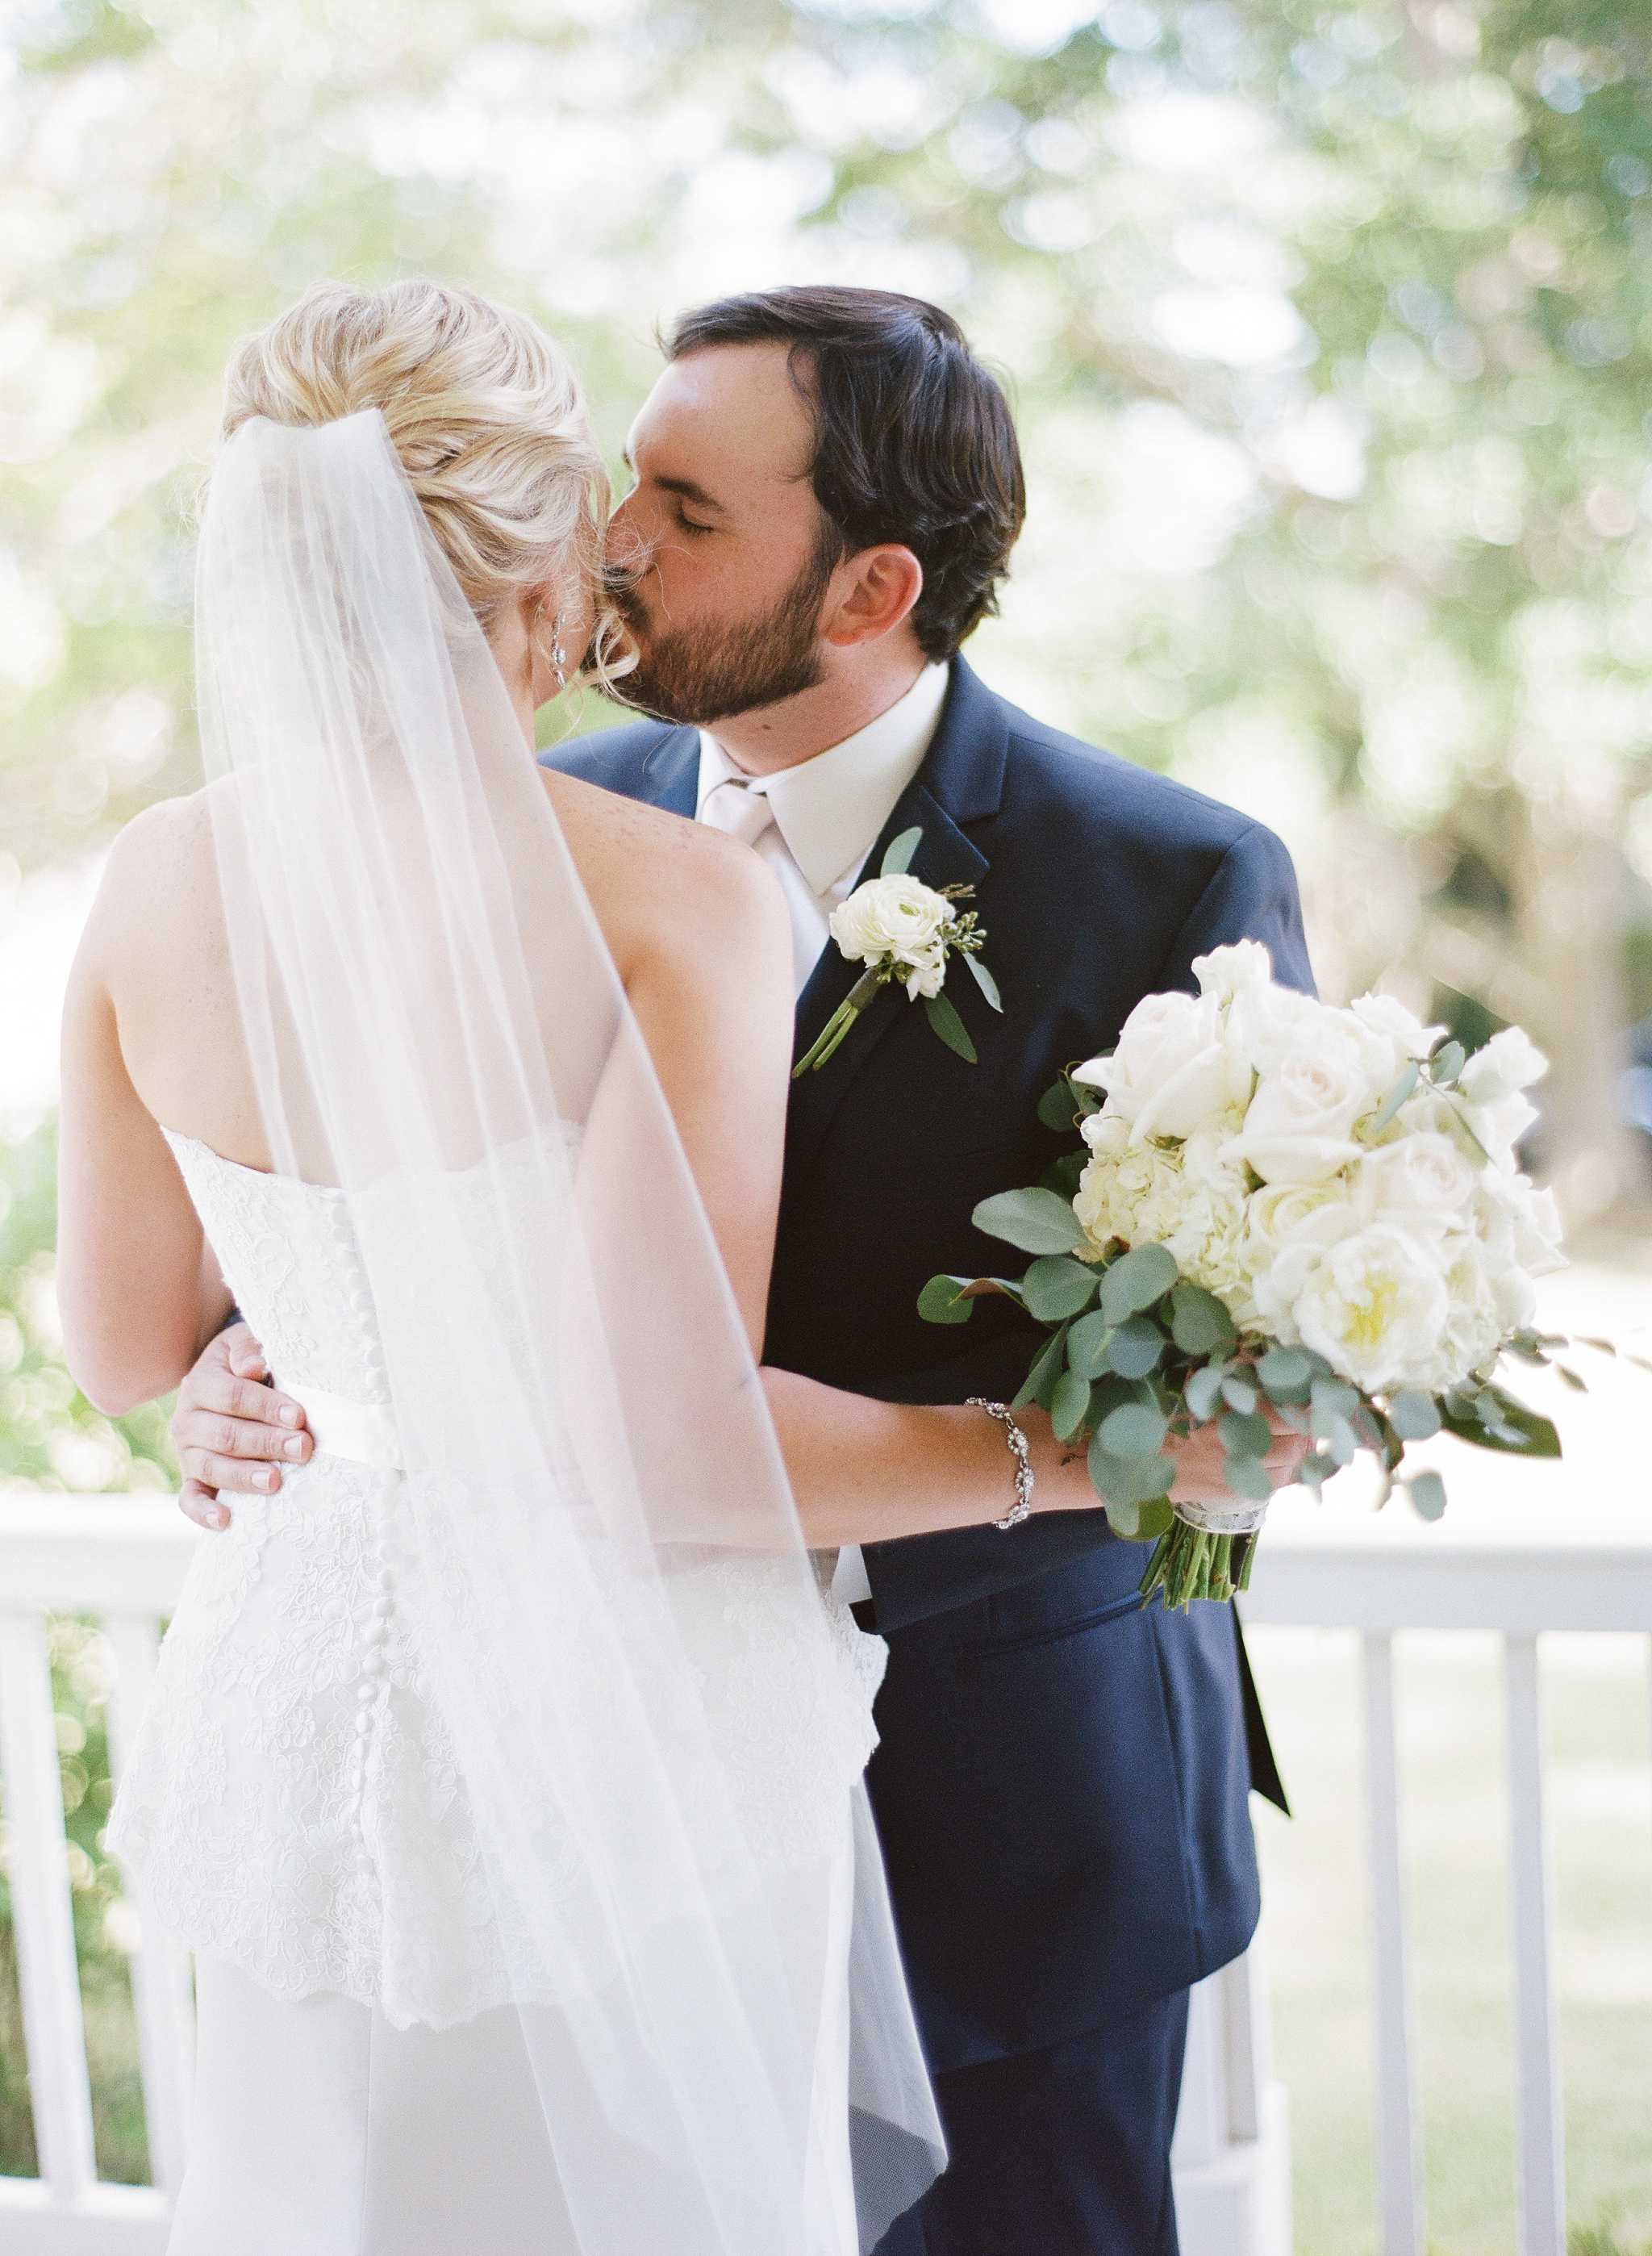 Southern Fete, Southern Wedding, Bride and Groom, Flowers by Rodney, Catherine Guidry Photography